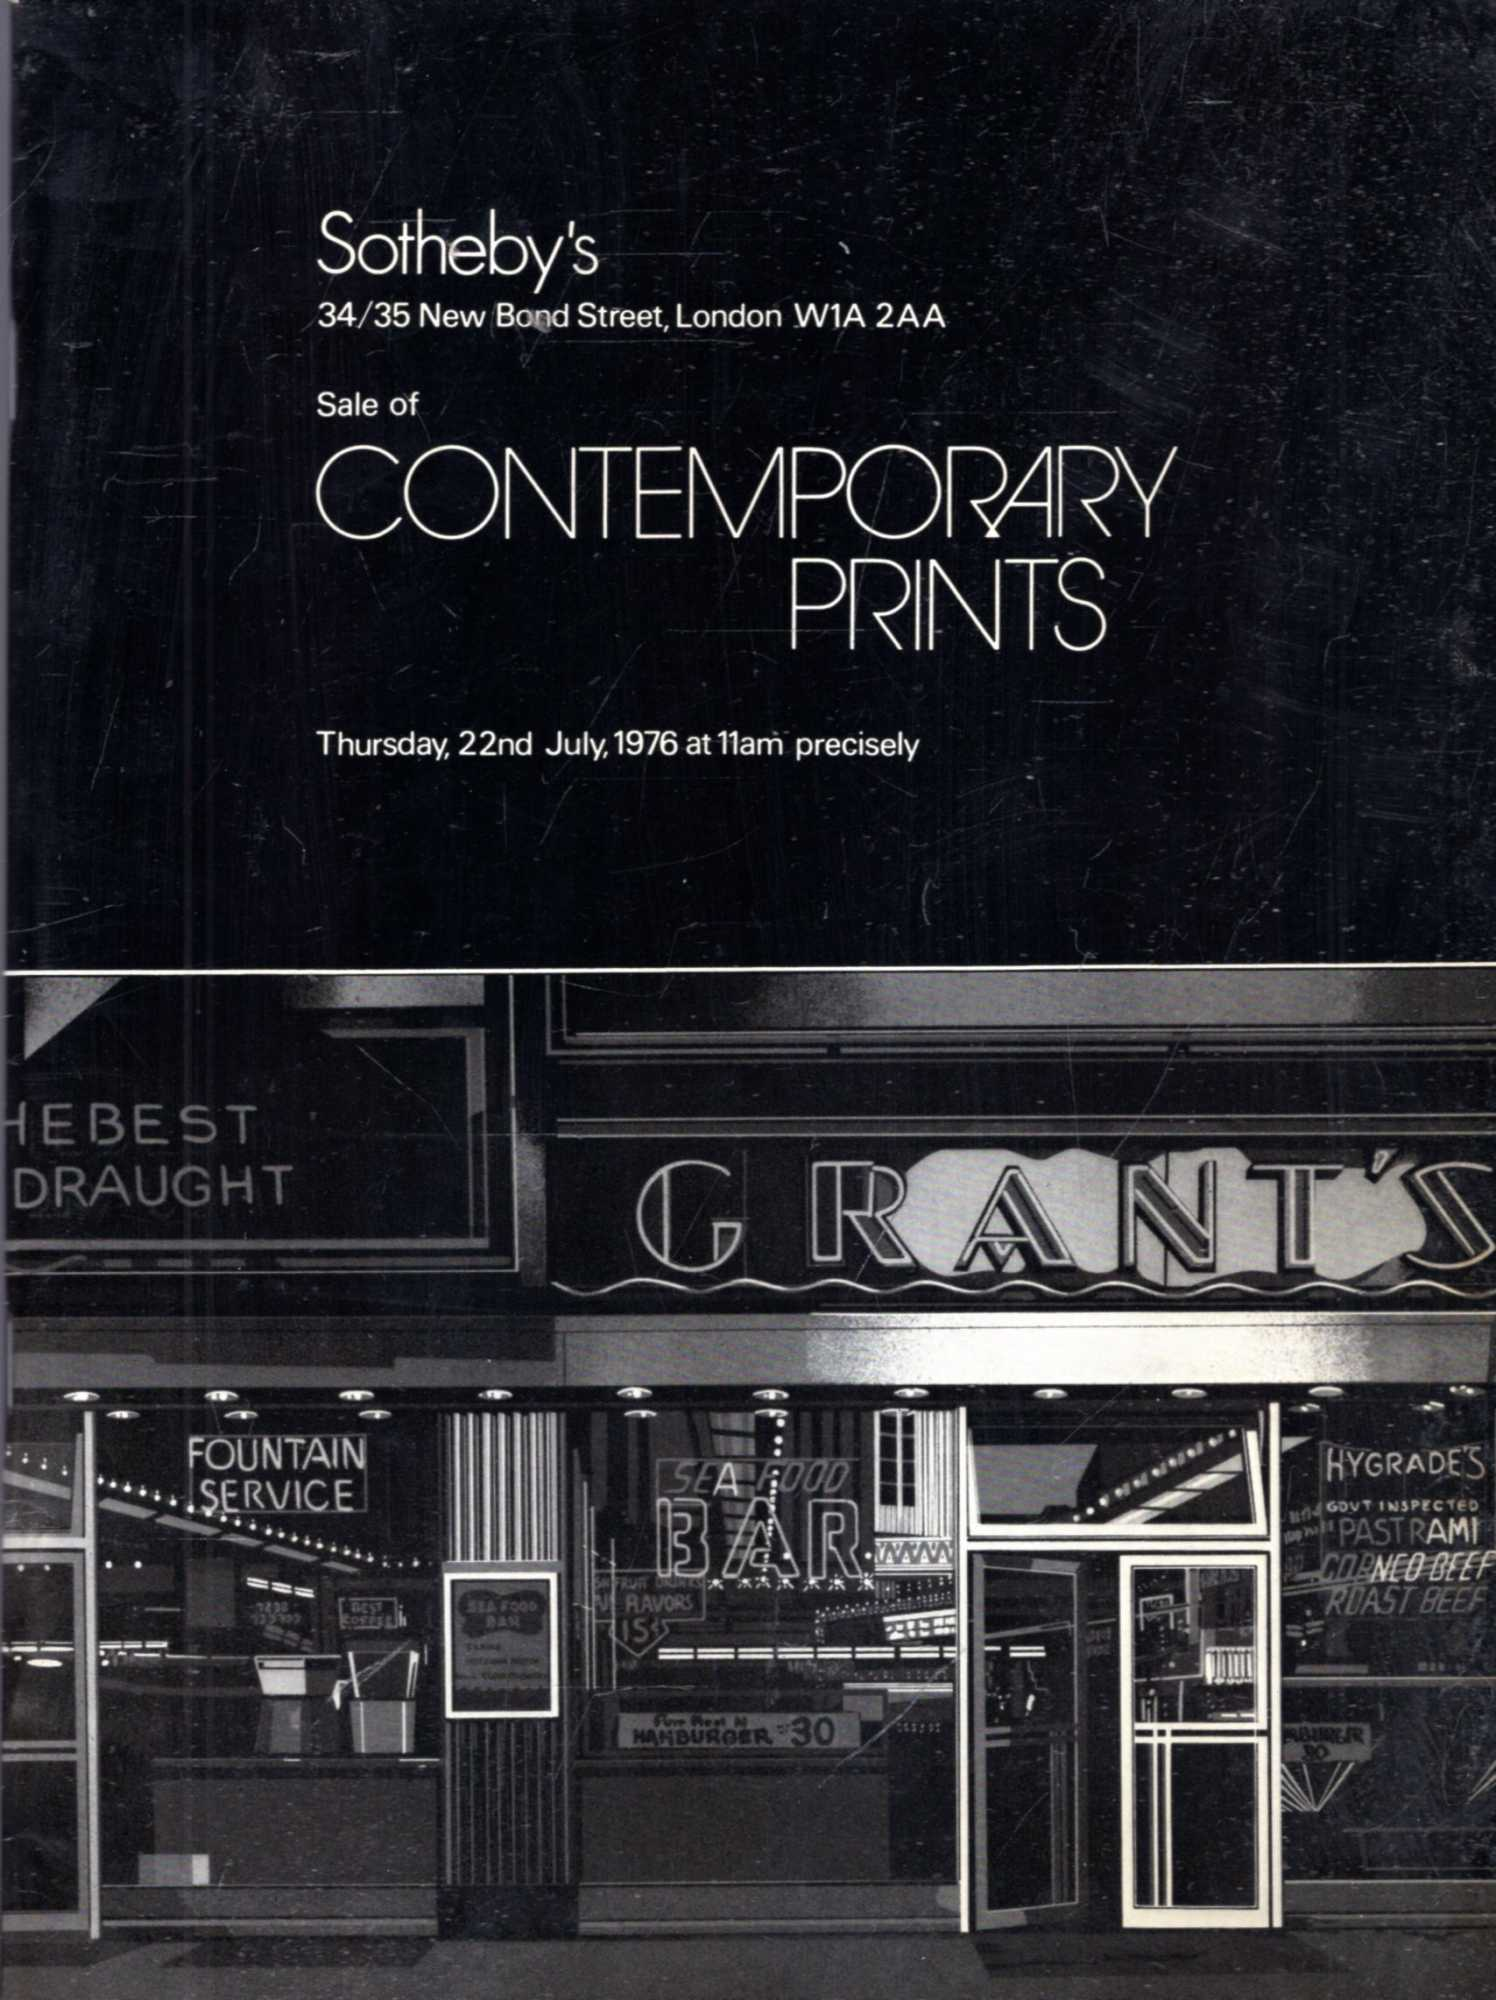 Image for Sale of Contemporary Prints, 22 July, 1976